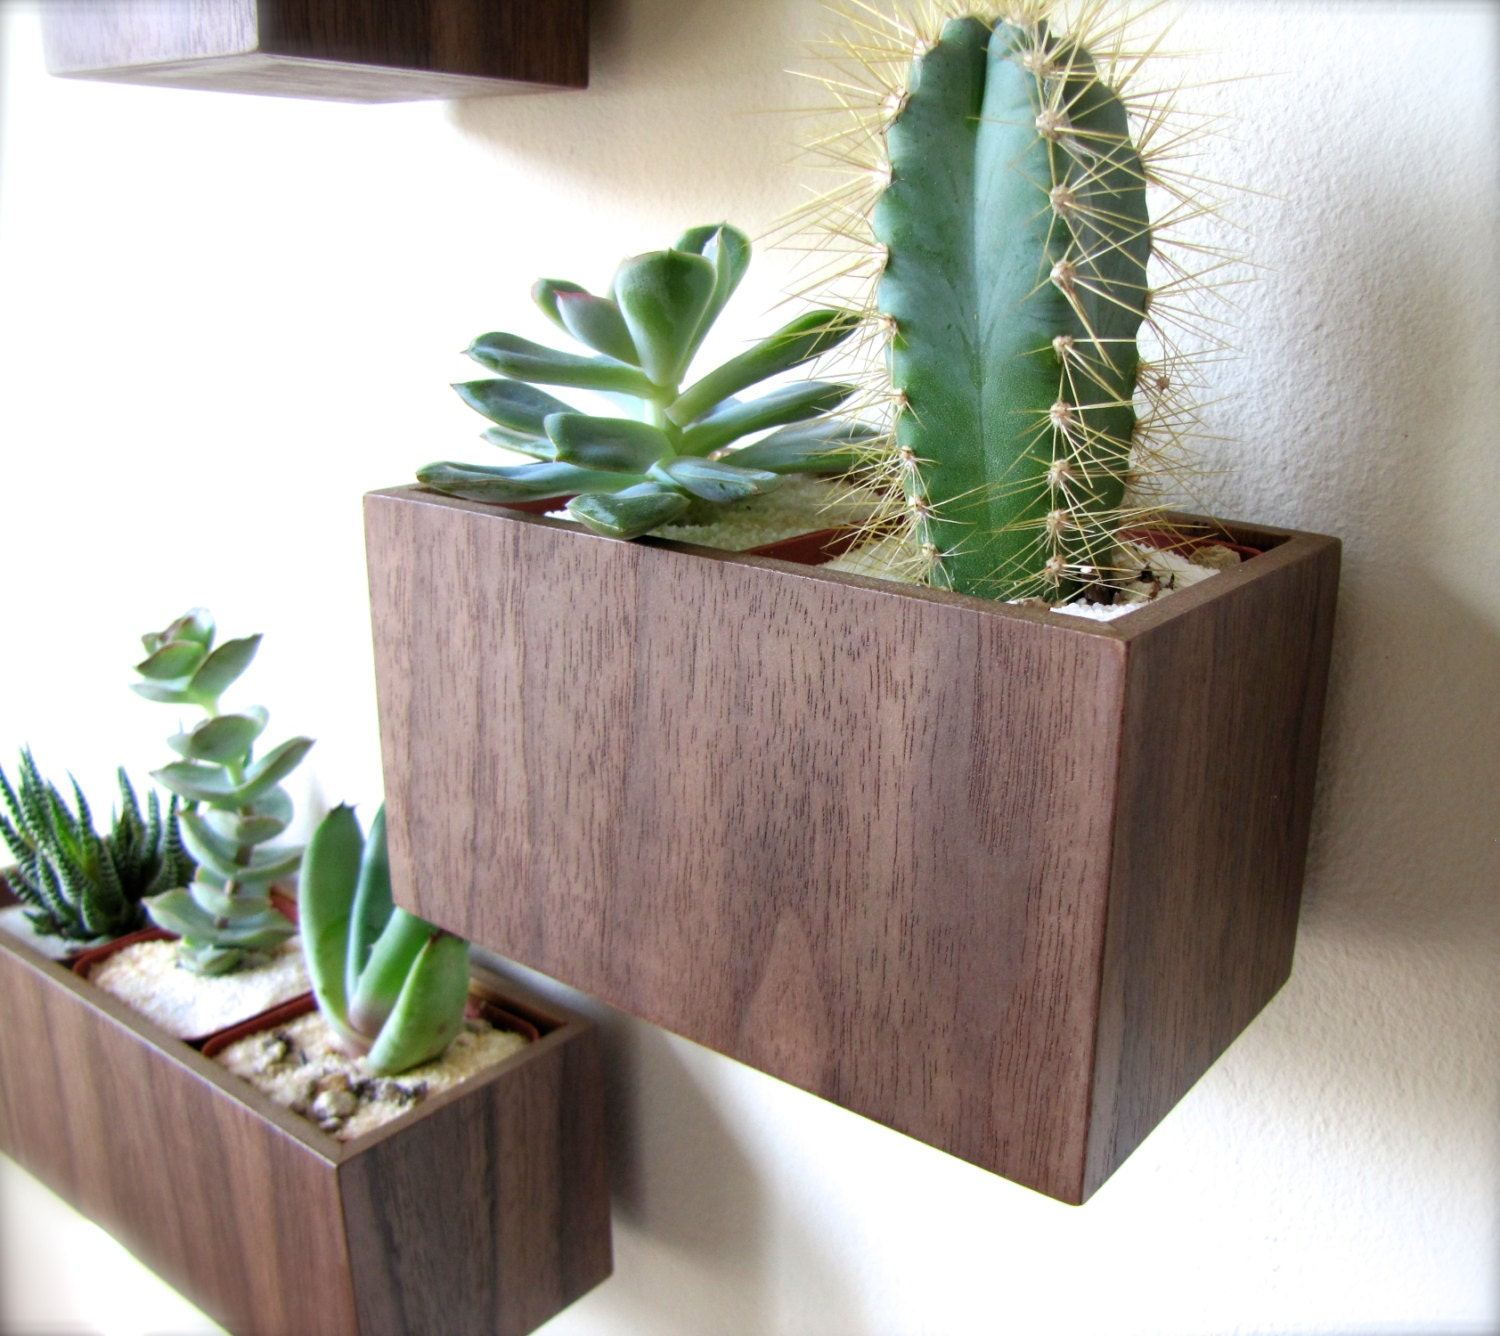 "Wall Planter, Plant Holder, Succulent Holder, made from WALNUT wood, MEDIUM rectangular shape (roughly 5"" x 3""), plants NOT included - thewoodybeckers"